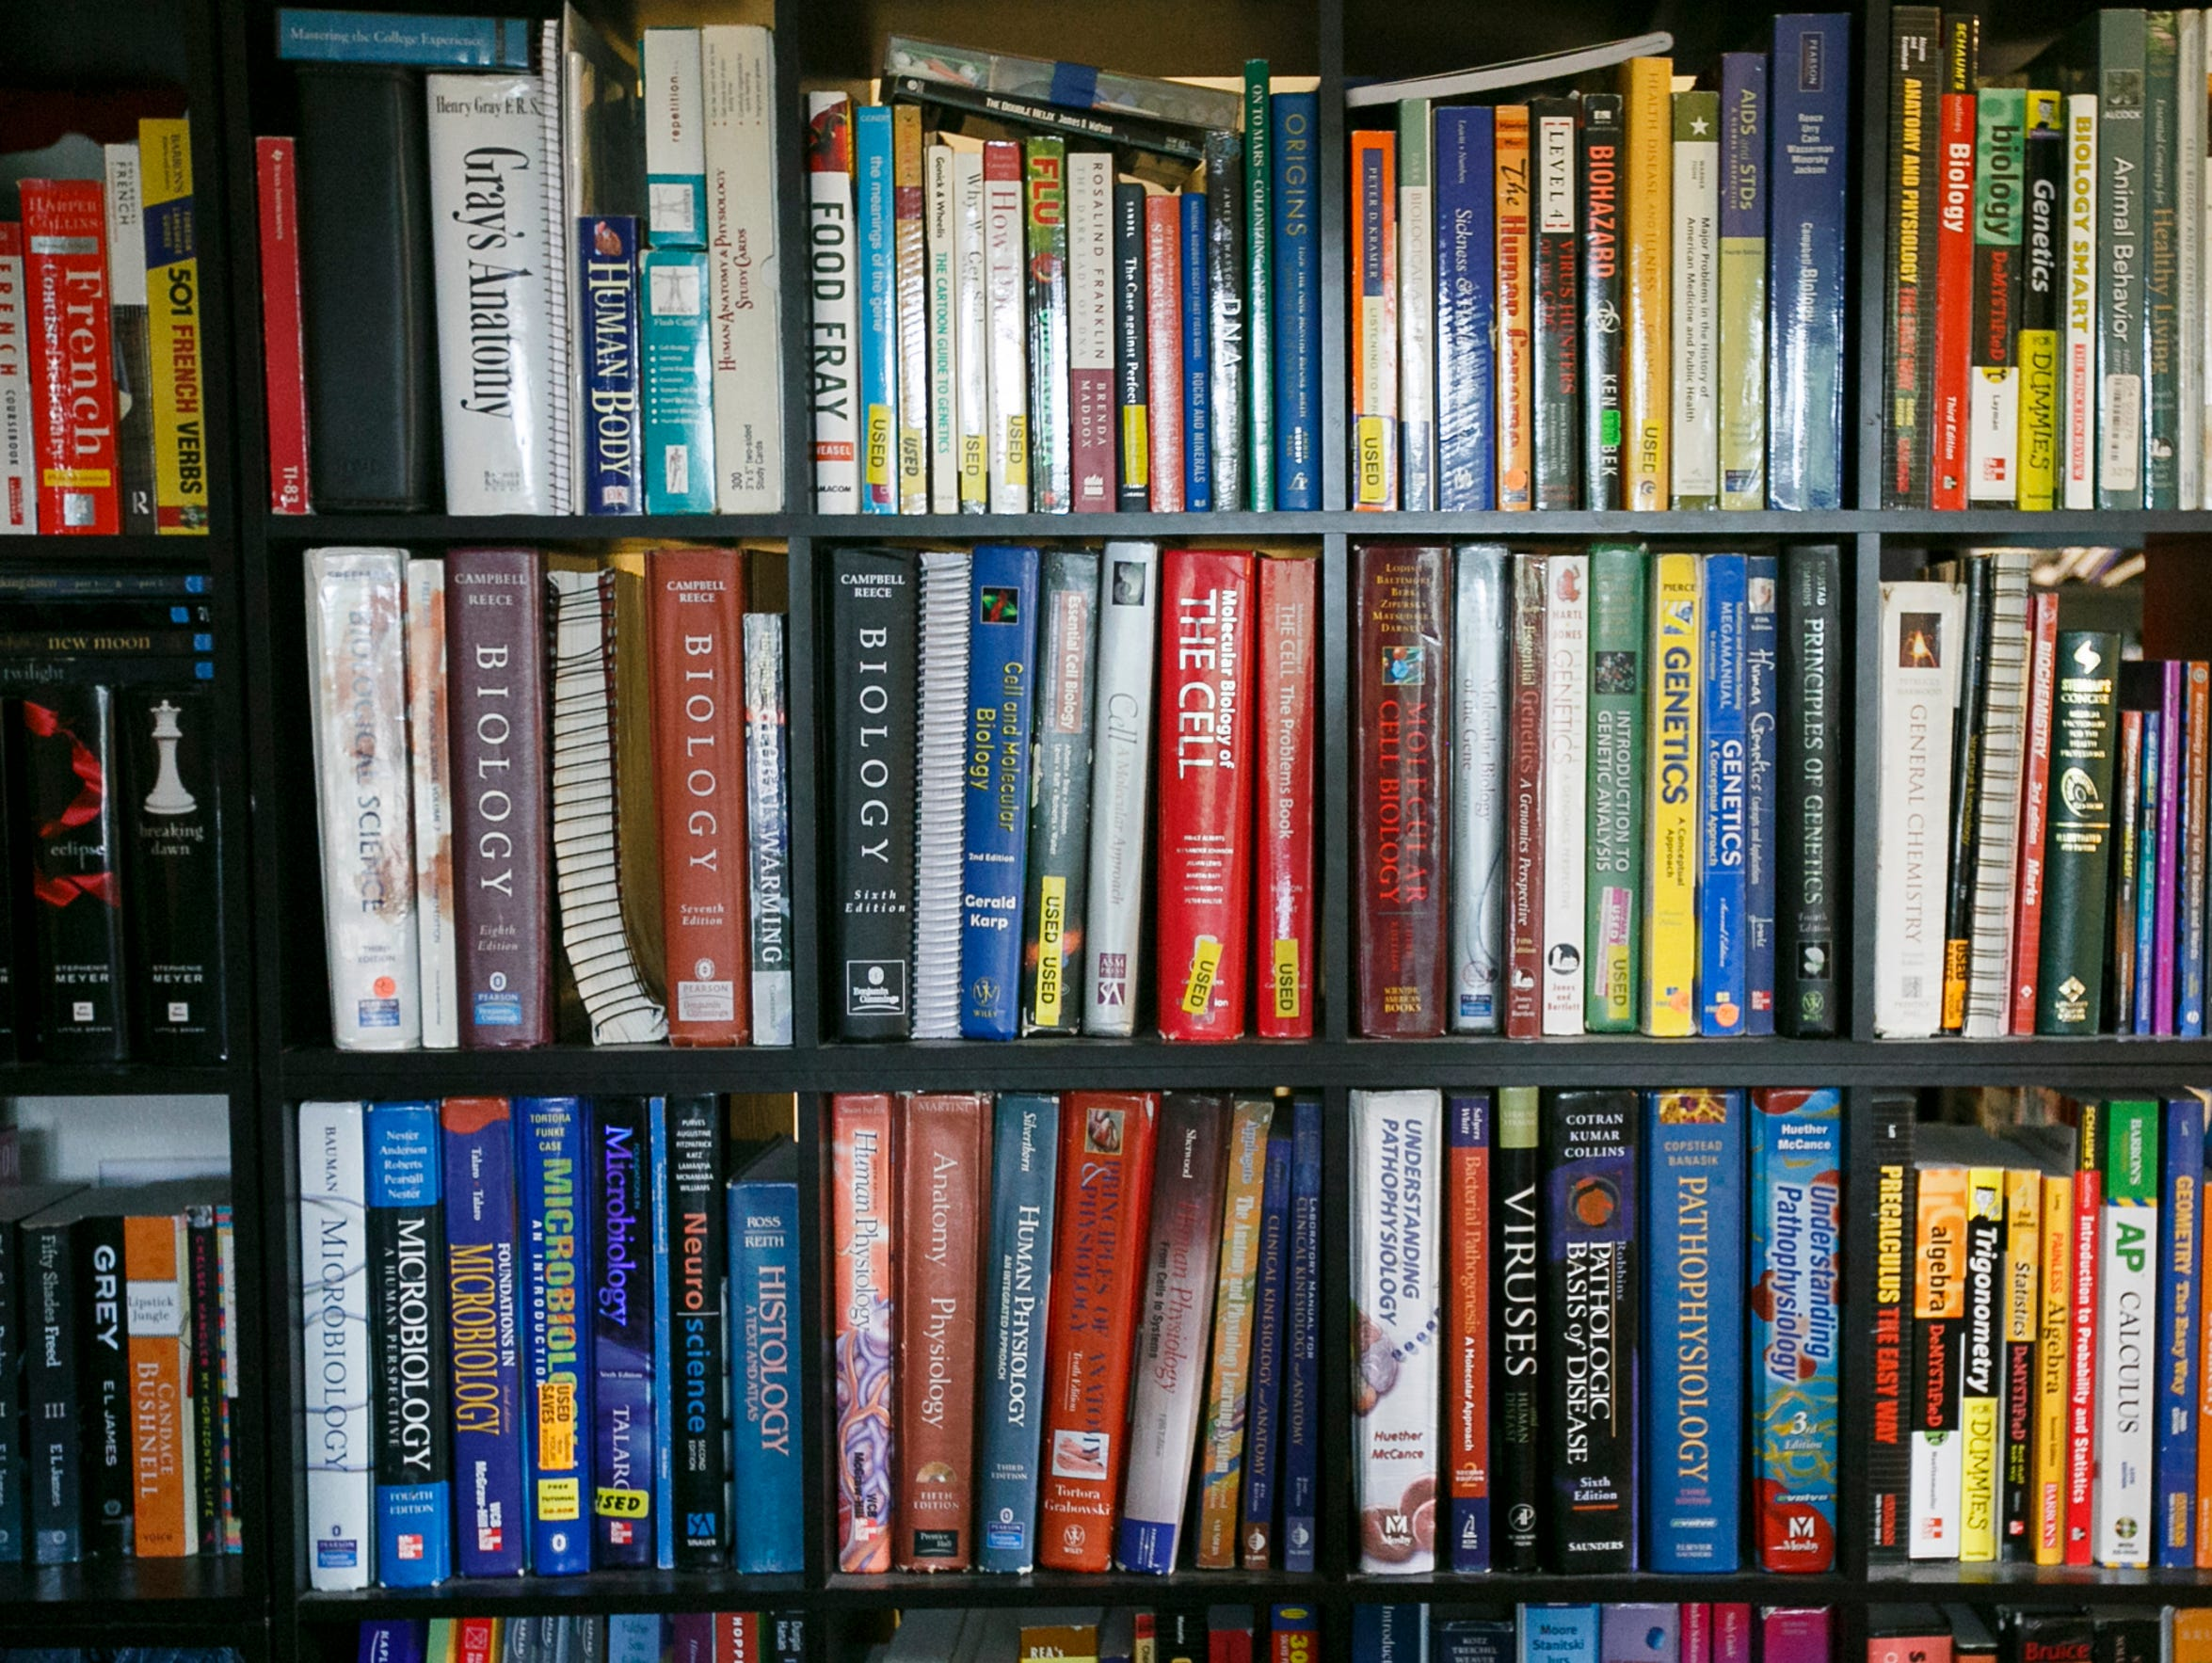 Mia Storm's living room is packed full of text books